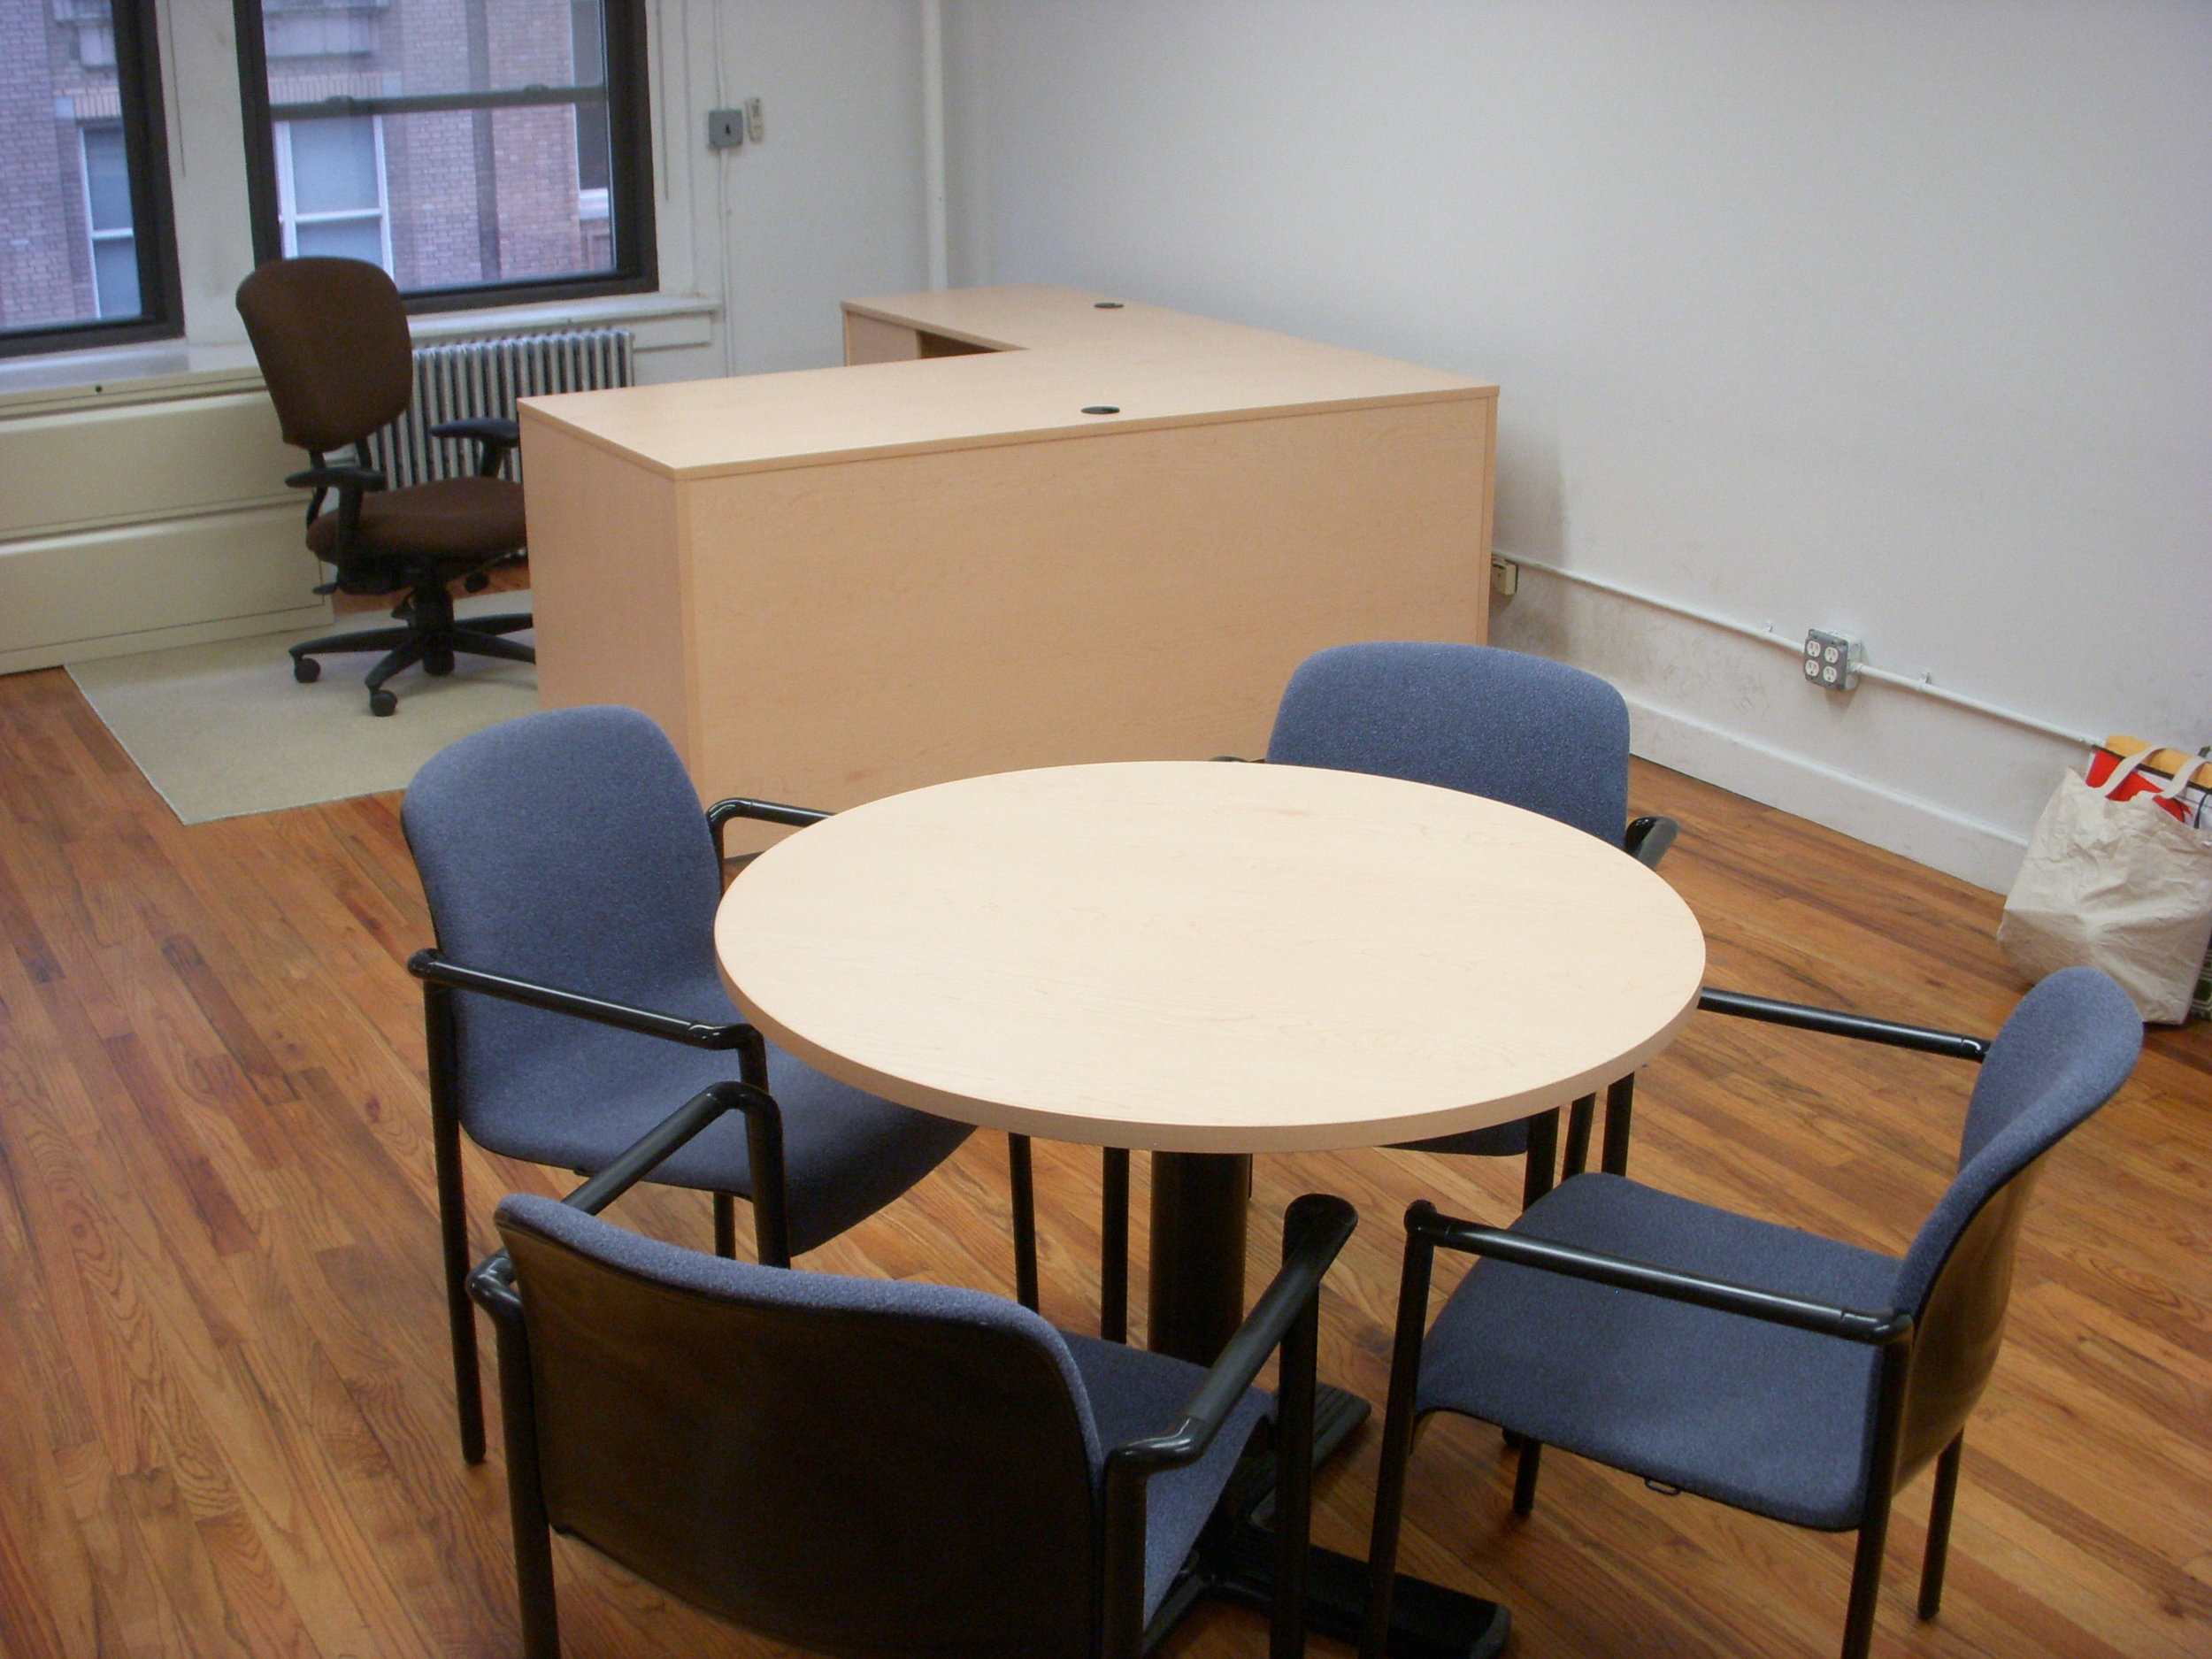 office suite with maple desk and table.JPG